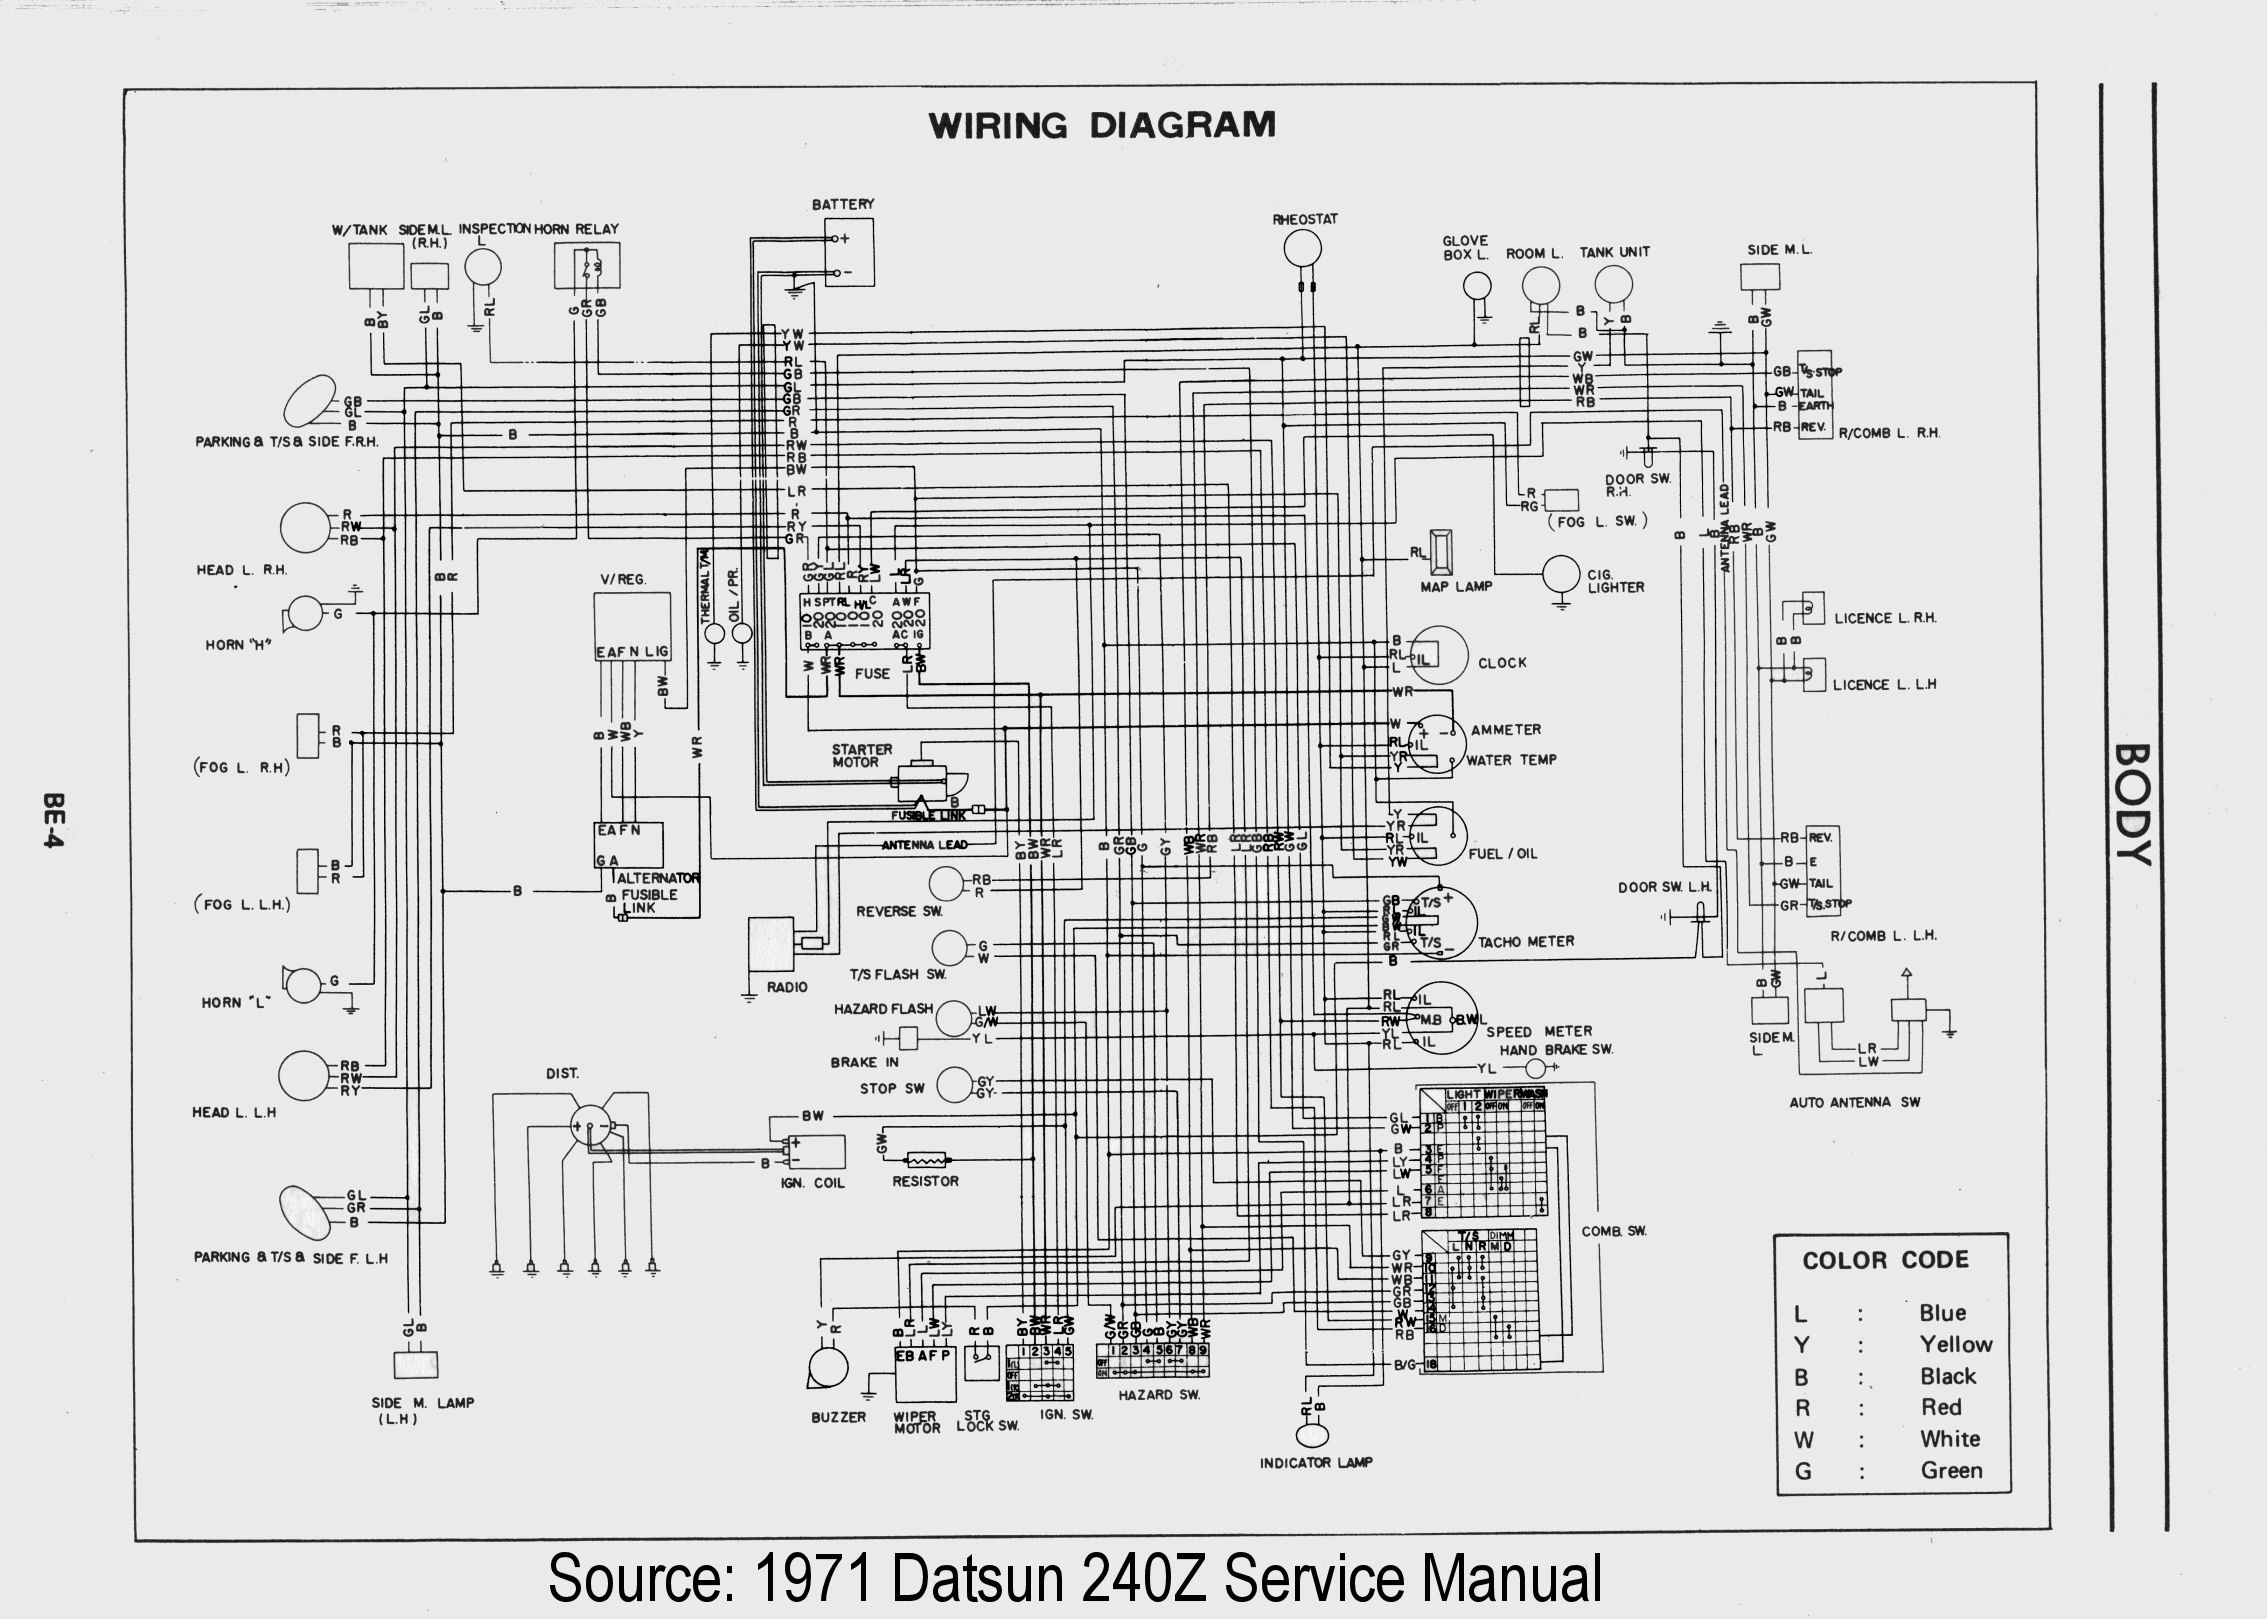 Wiring Diagram HiRes 2 240z wiring diagram 280z wiring diagram \u2022 wiring diagrams j Schecter Diamond Series Wiring Diagram at panicattacktreatment.co